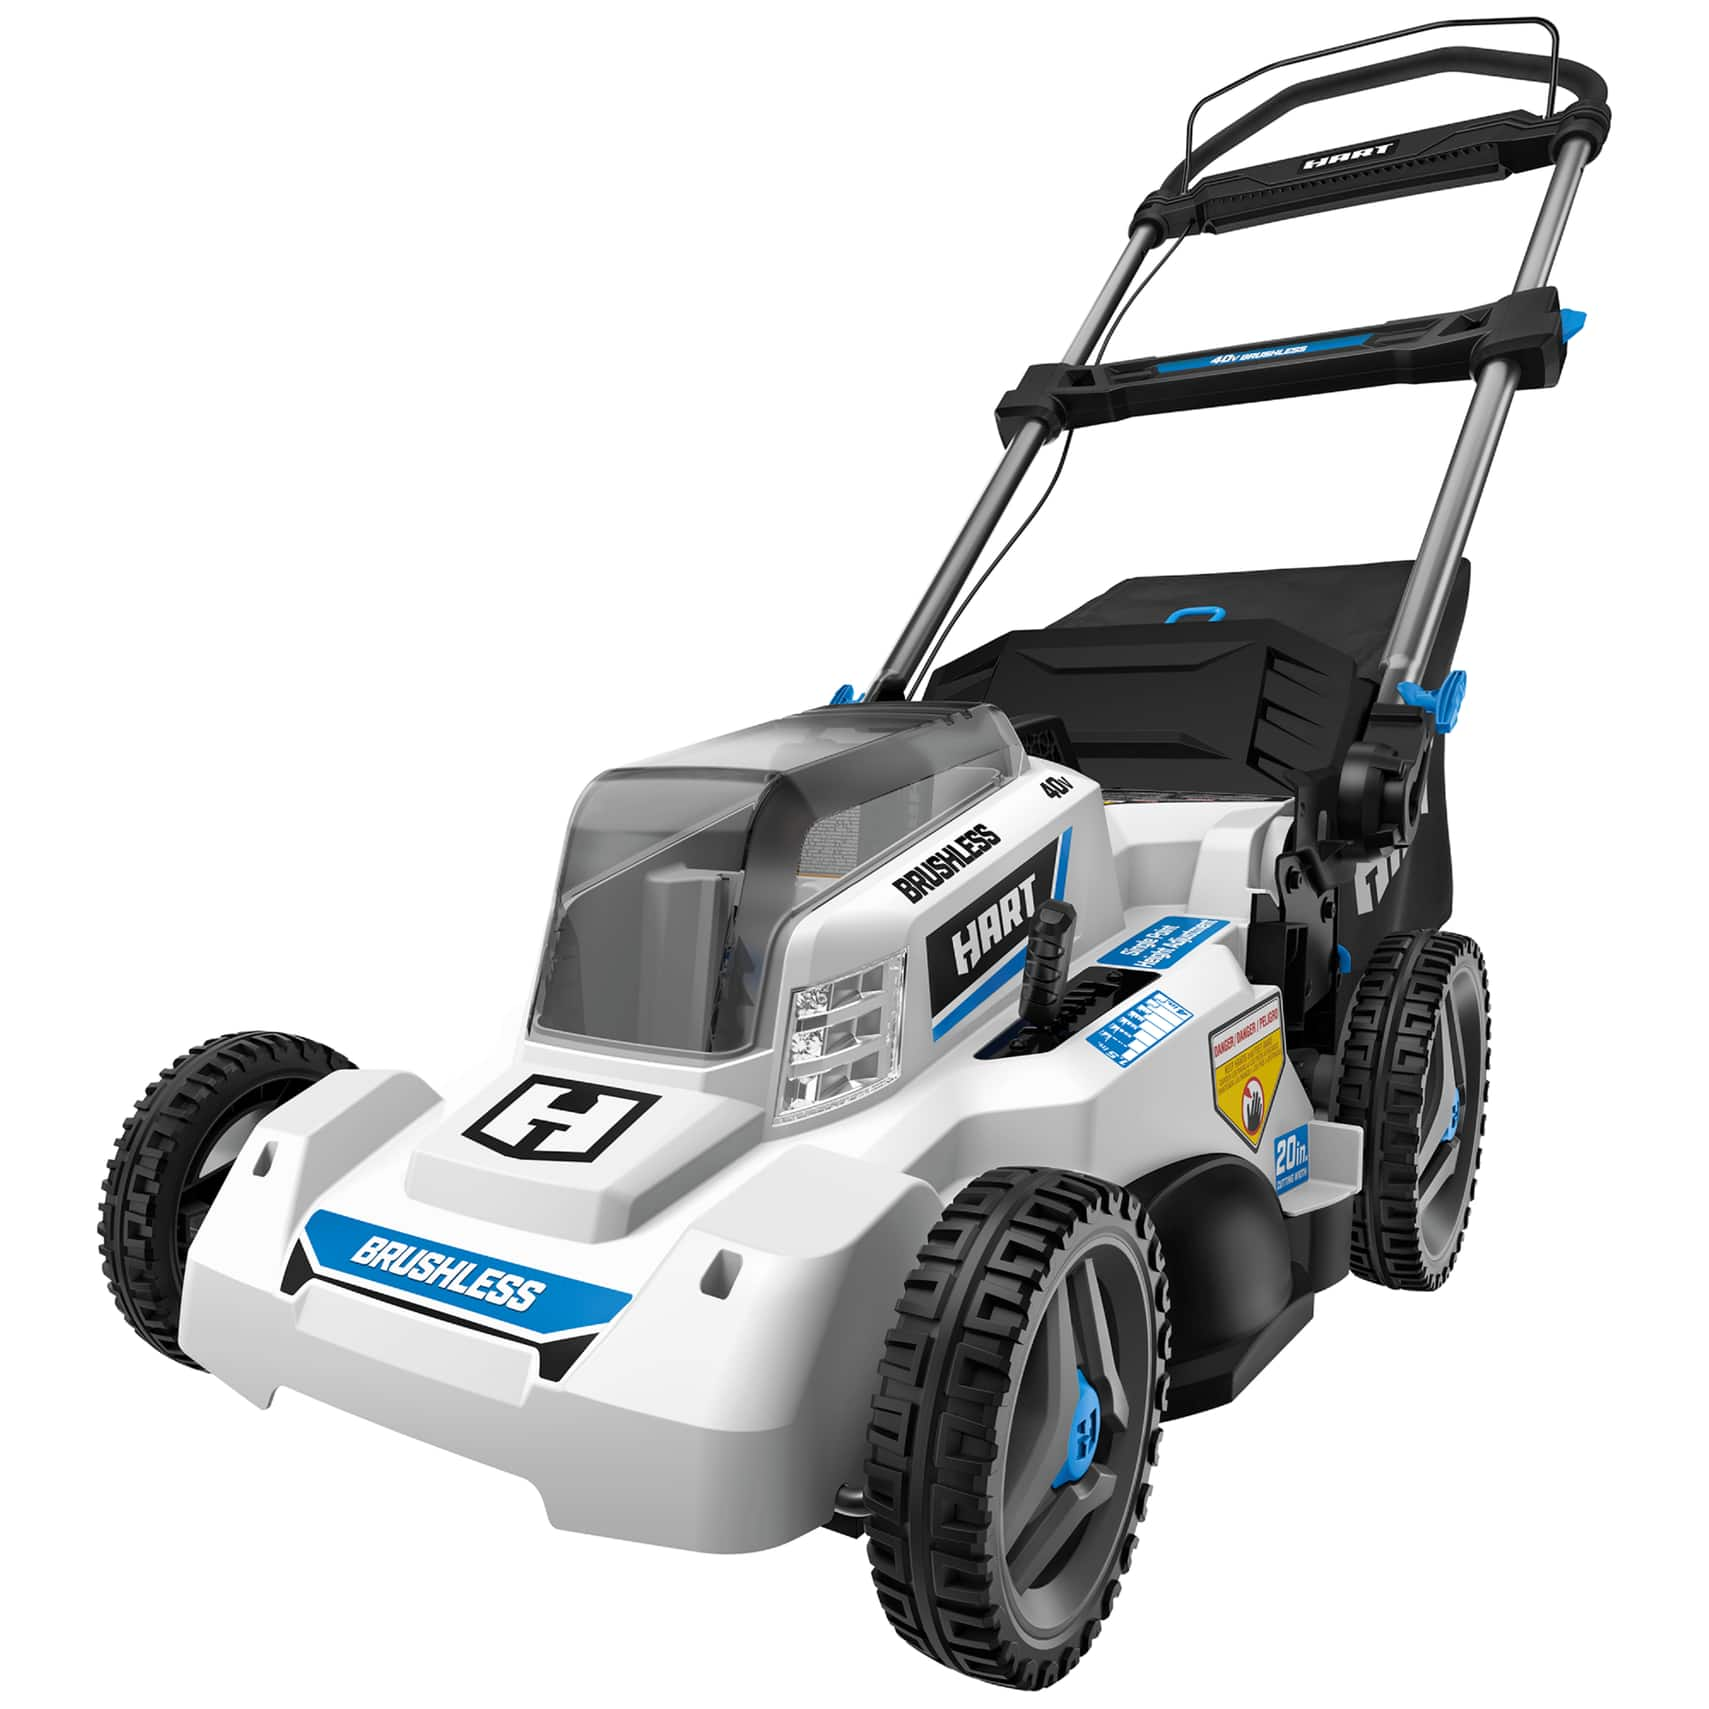 """Hart 20"""" Brushless Rechargeable Lawn Mower 5.0 Ah Battery w/Charger $150 on Clearance at Walmart YMMV"""